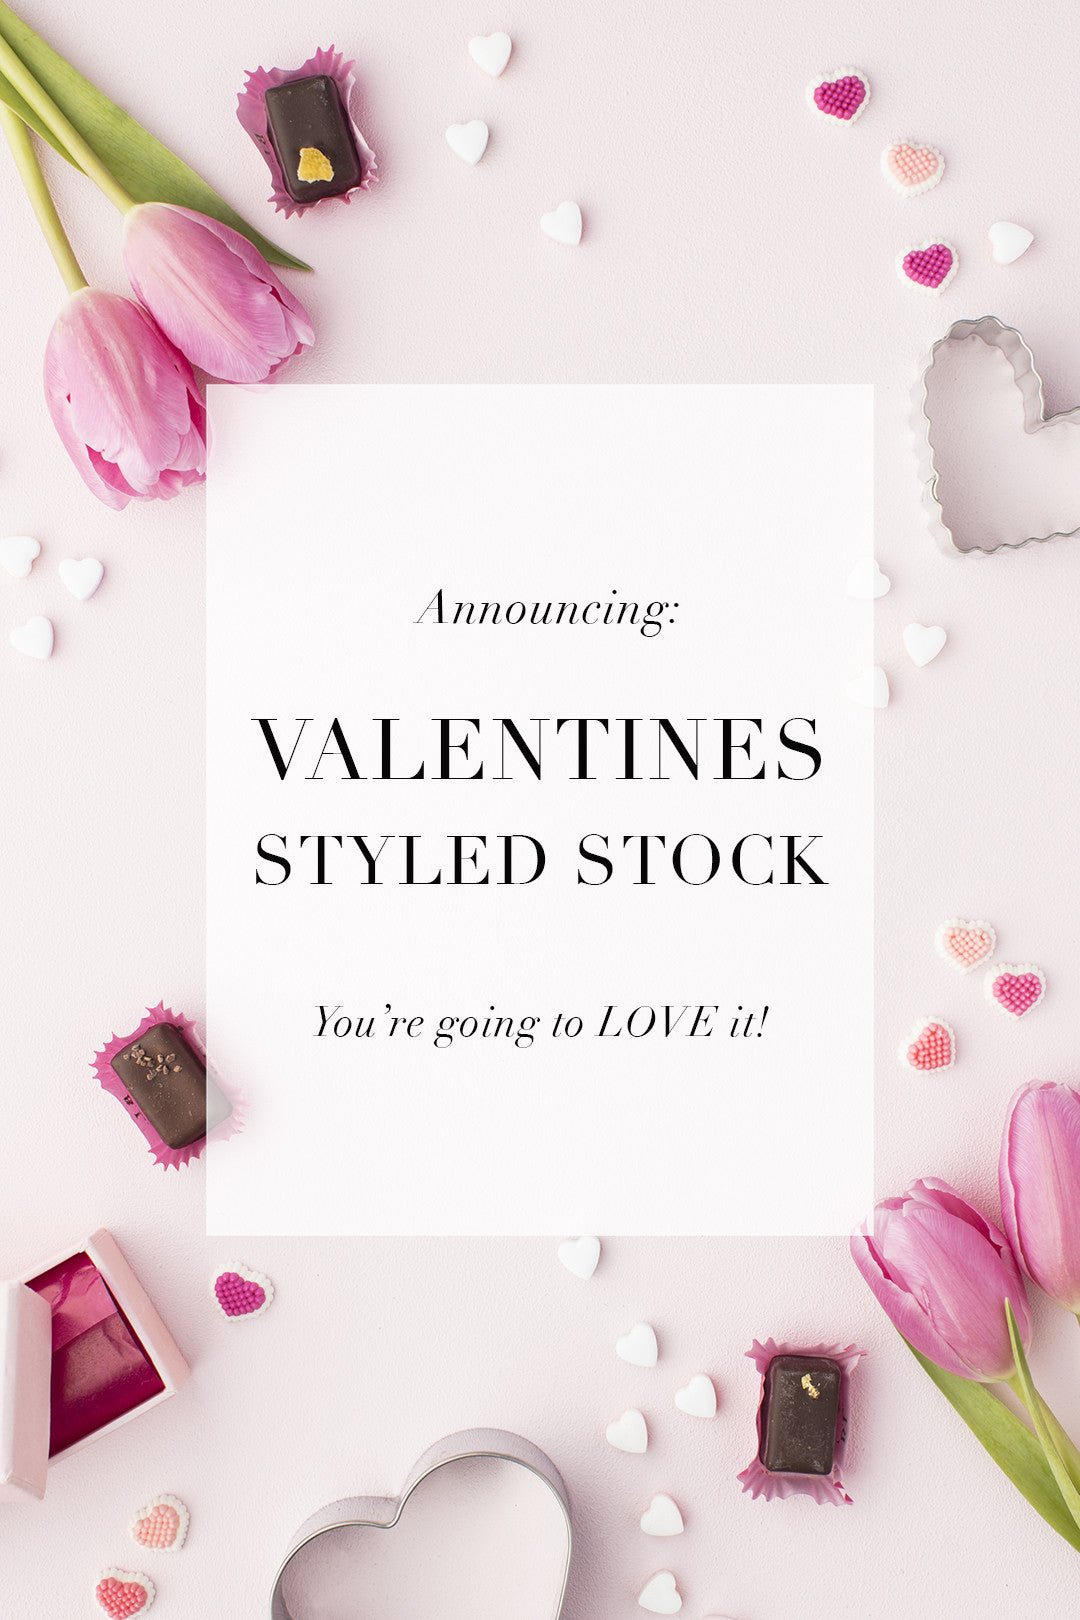 New In The Shop: Valentine's Day styled stock images to make your heart swoon!